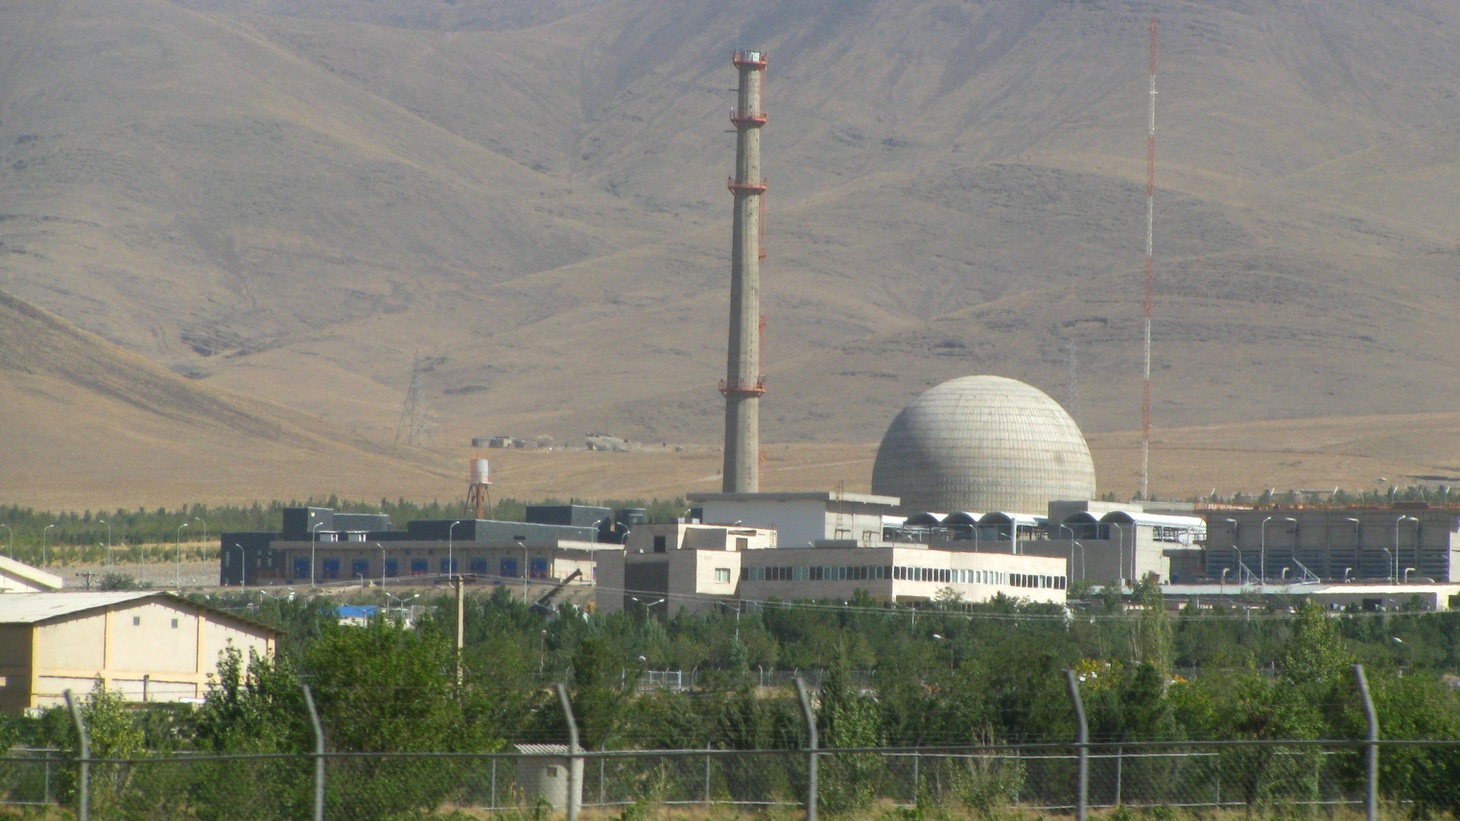 The US and 5 other countries have resumed talks with Iran about lifting sanctions in exchange for curbs on nuclear development. Does Iran's transparency justify optimism?